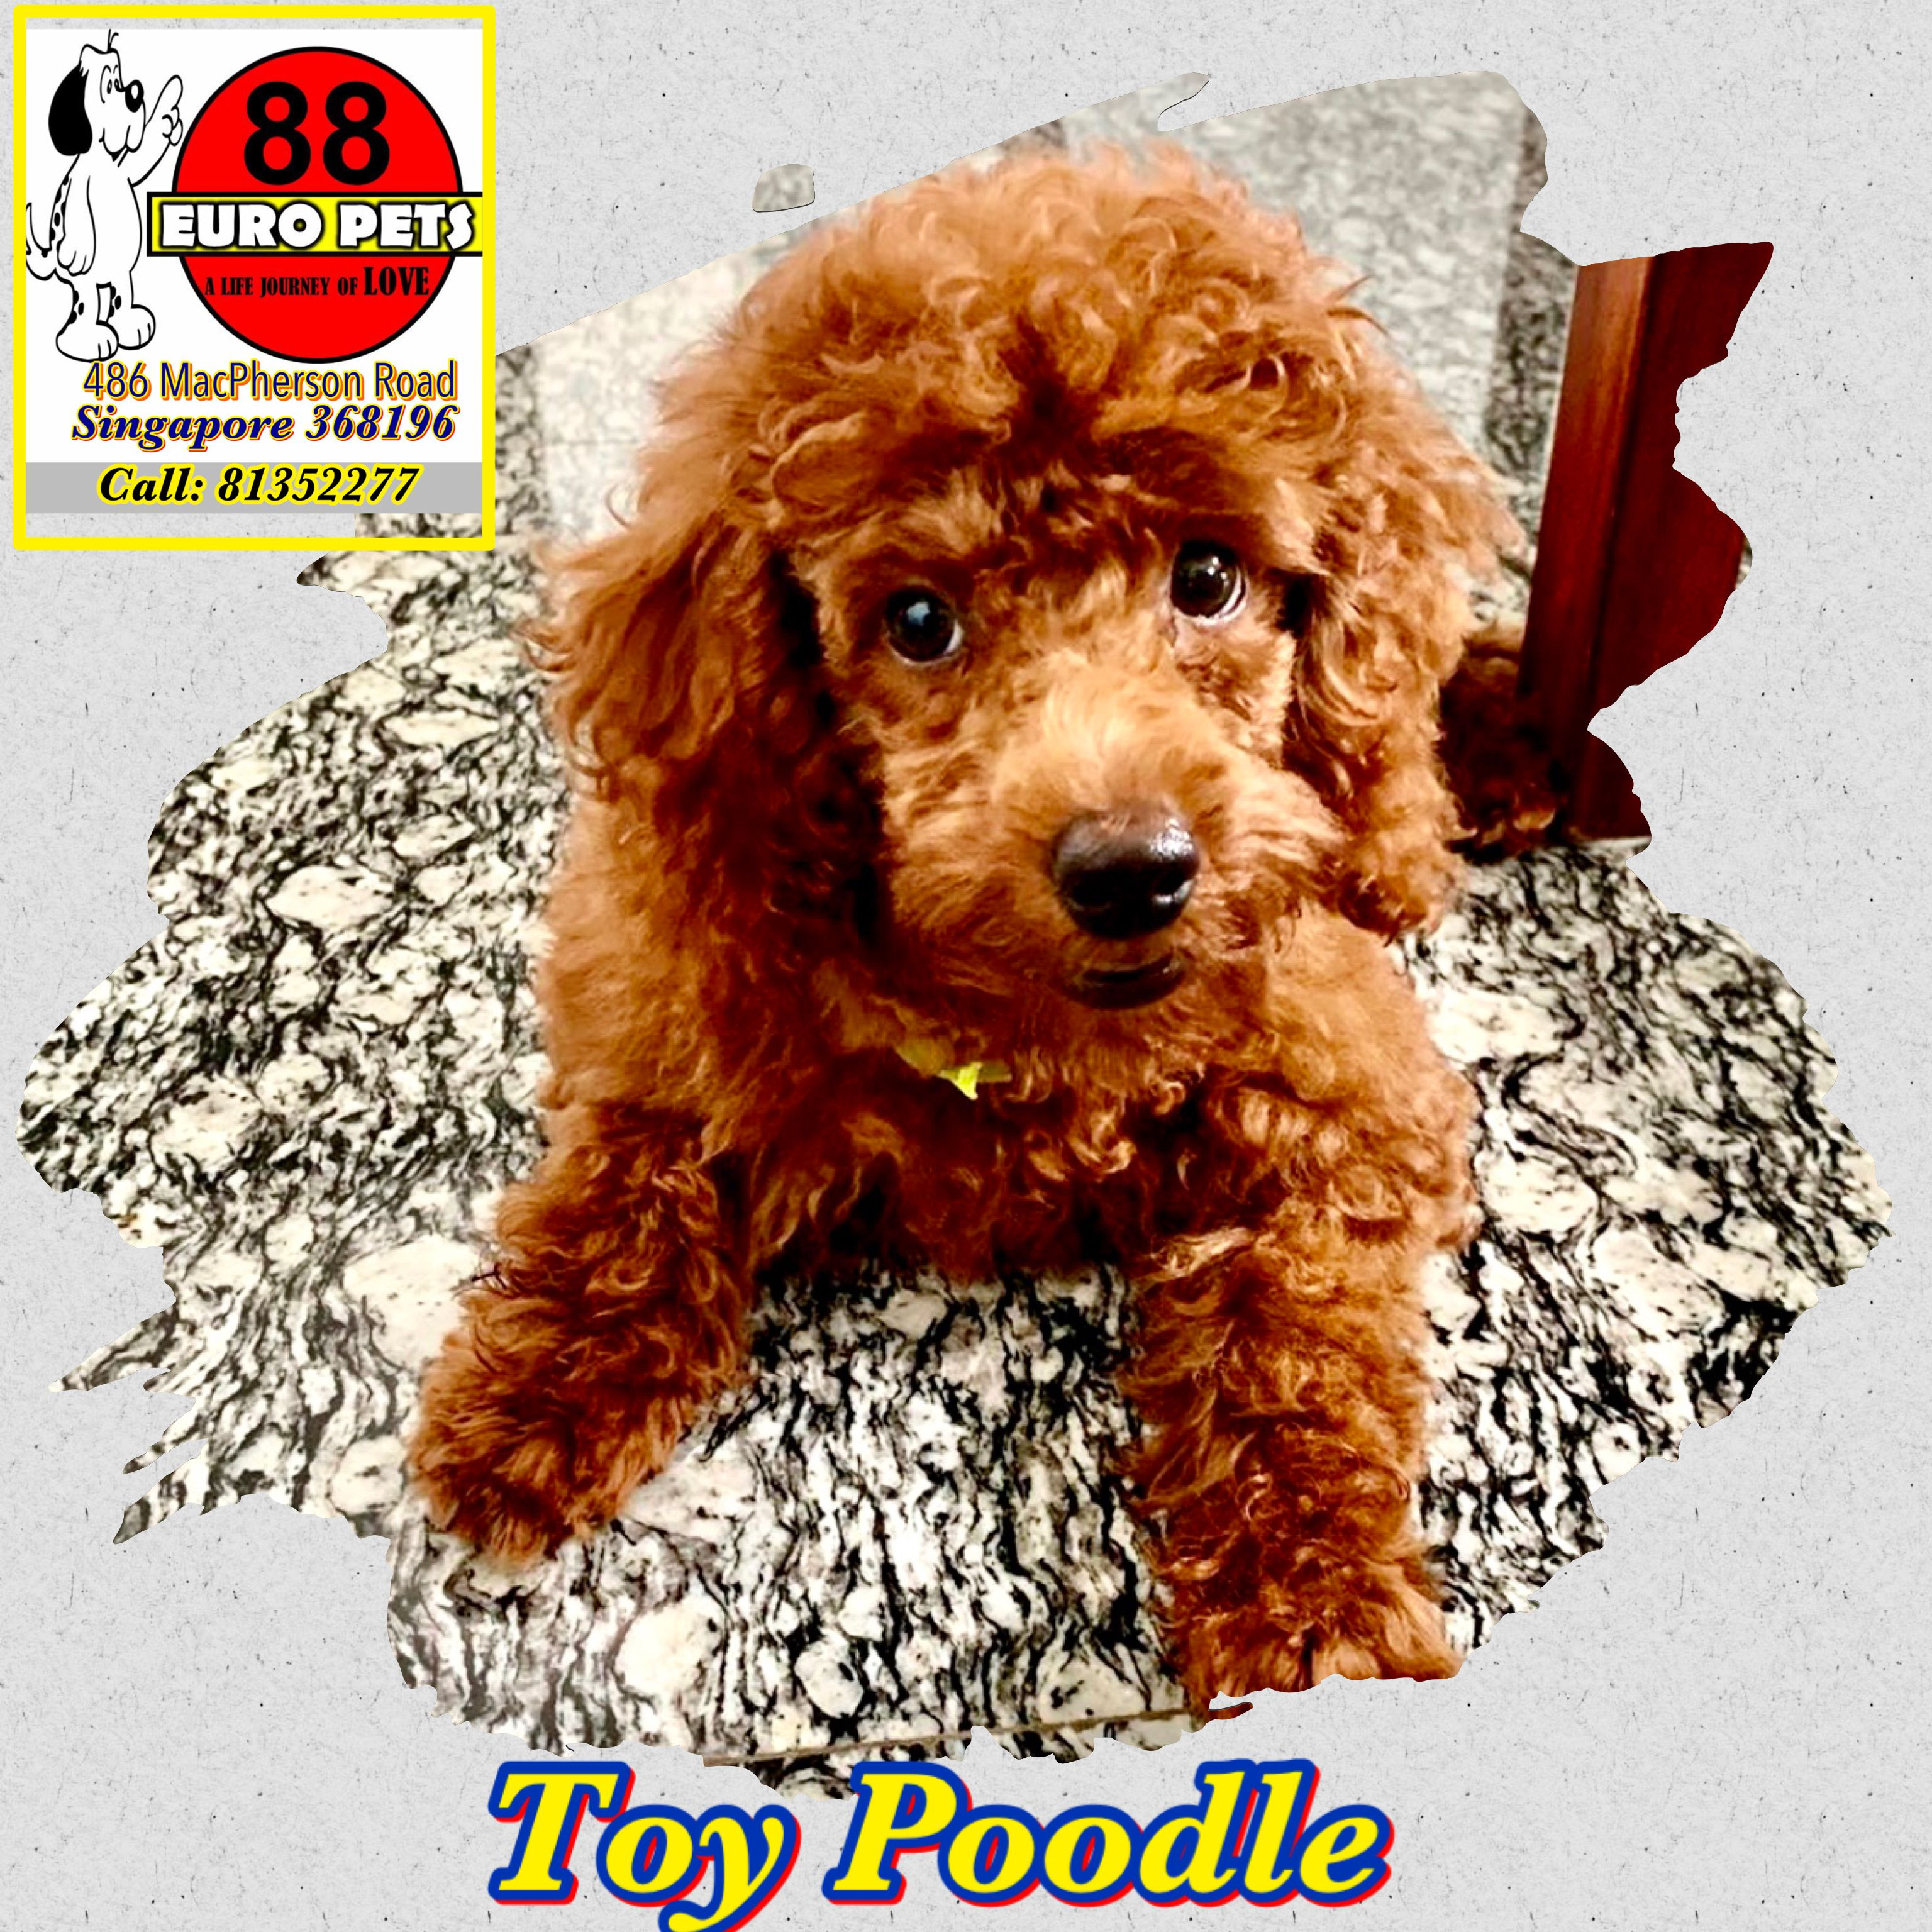 Toy Poodle For Sale Singapore In 2020 Toy Poodles For Sale Toy Poodle Poodle